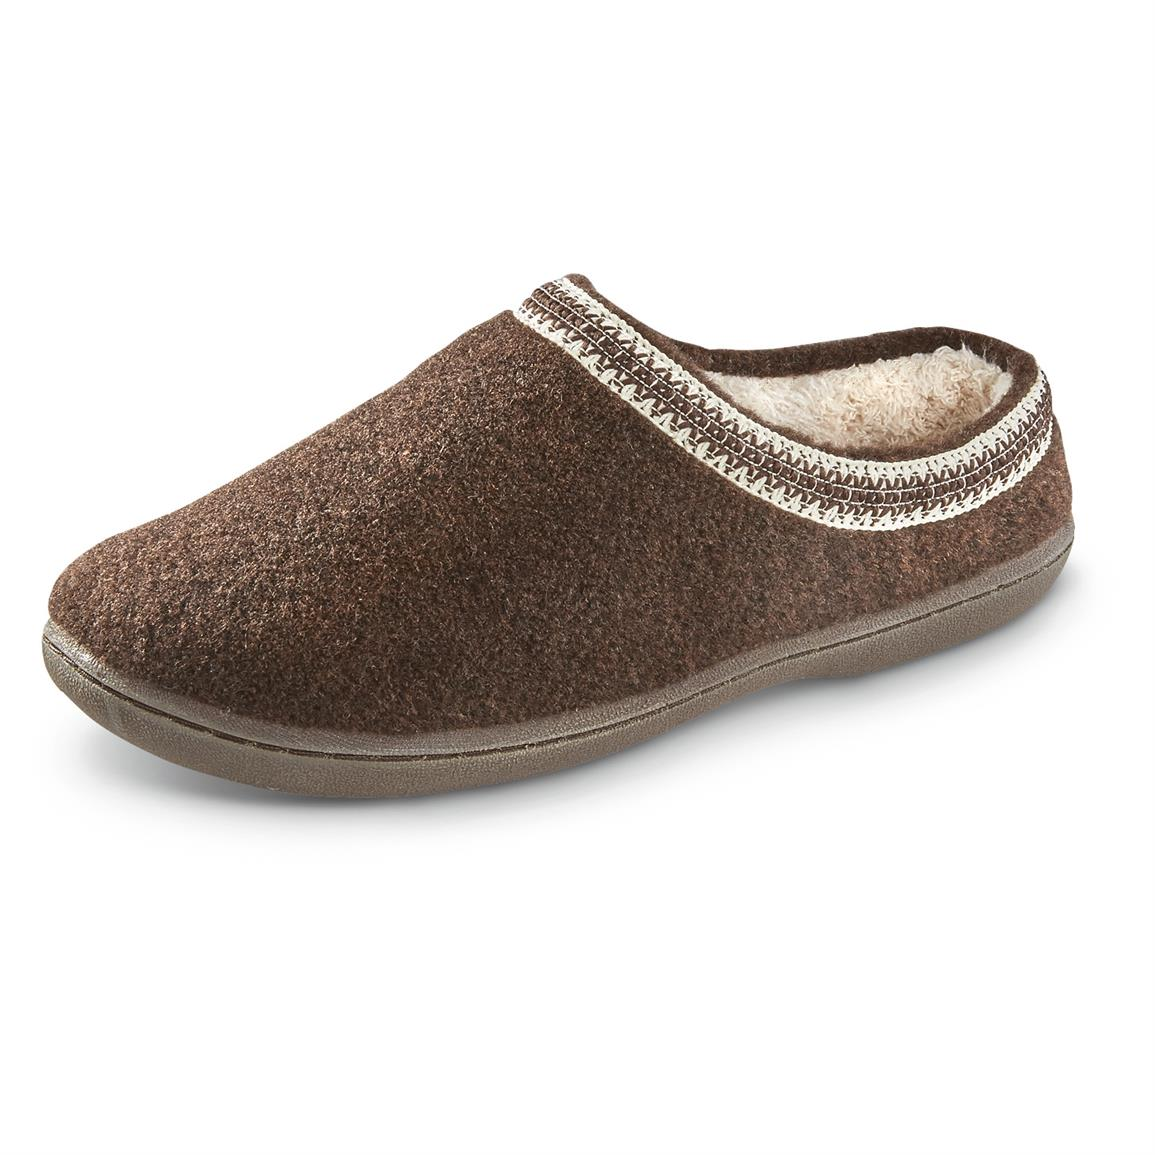 Guide Gear Women's Wool Clogs, Brown